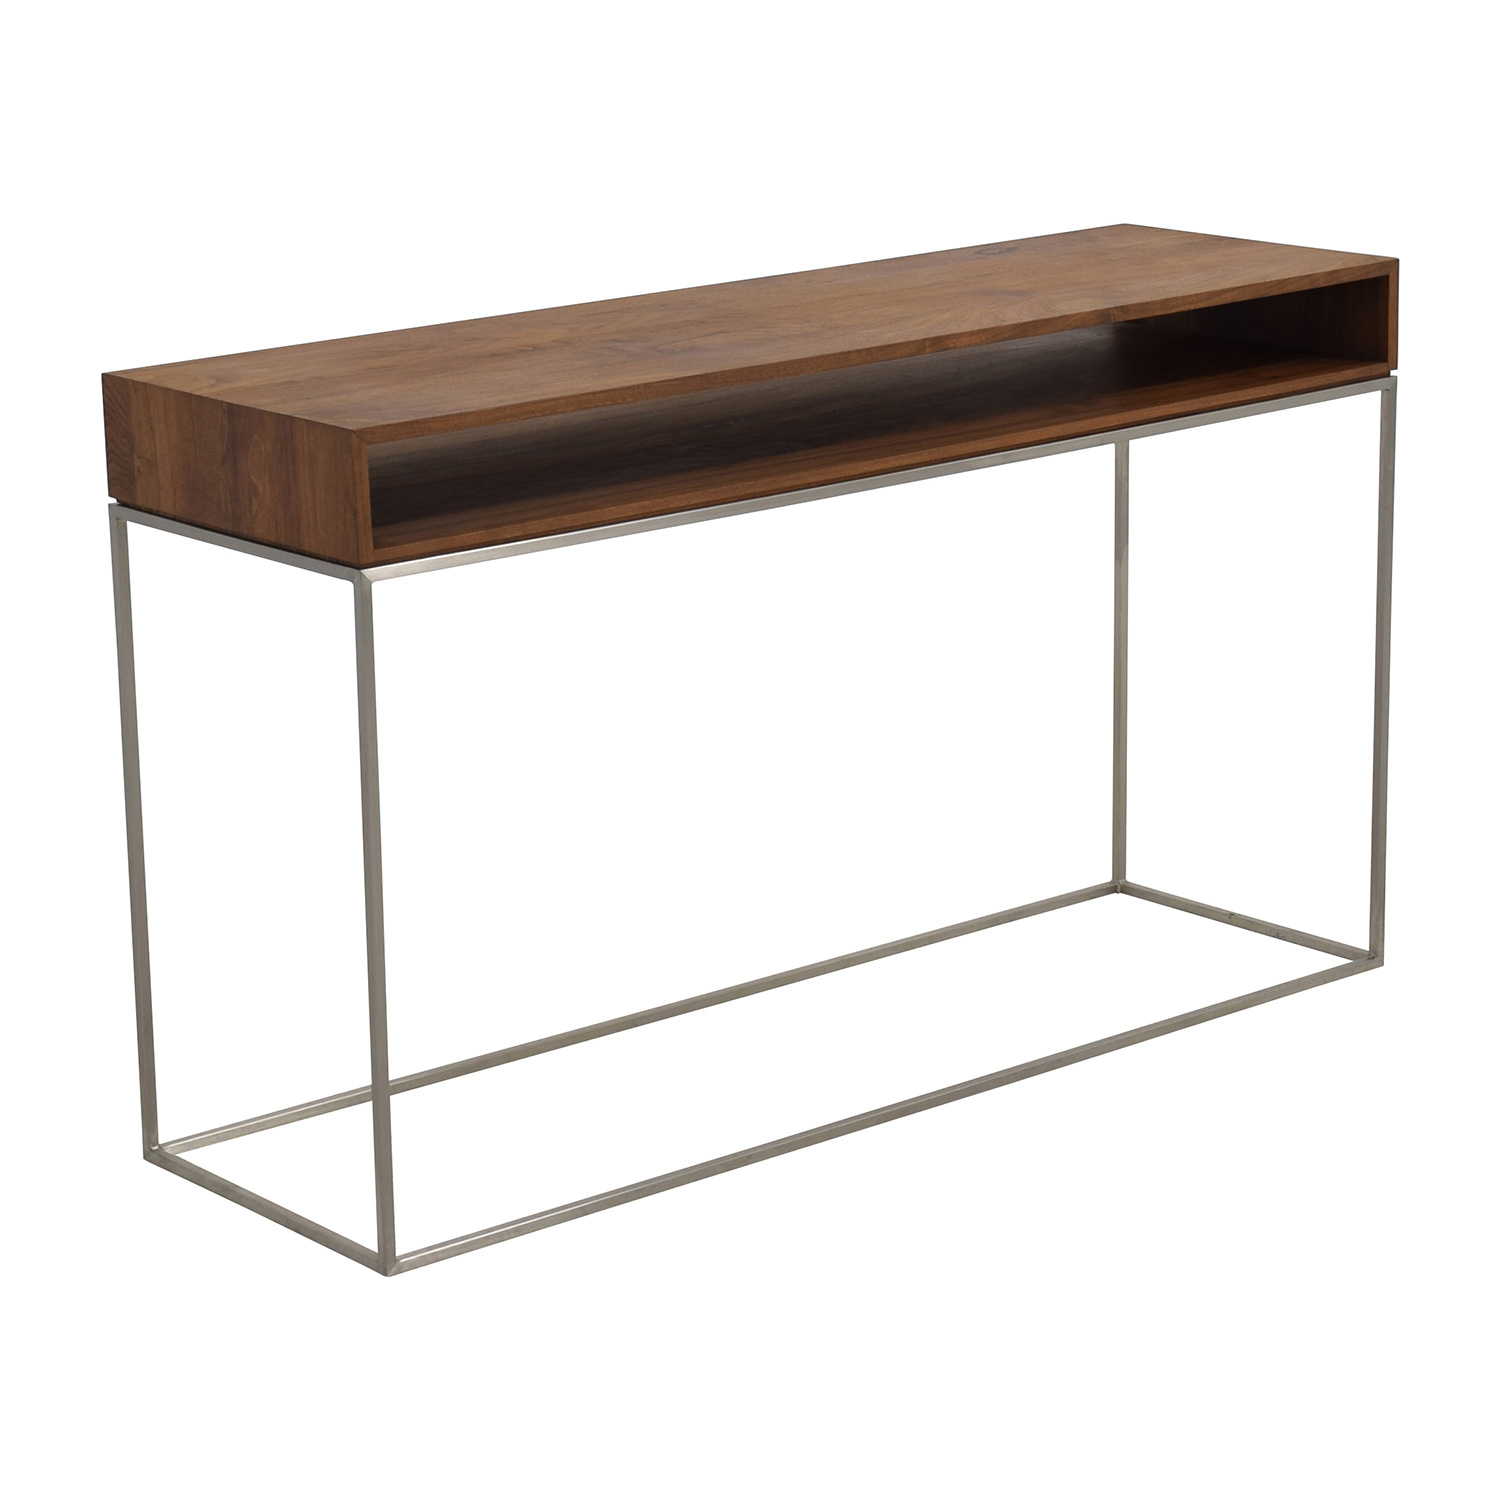 ... CB2 Wood And Metal Frame Console Table CB2 ...